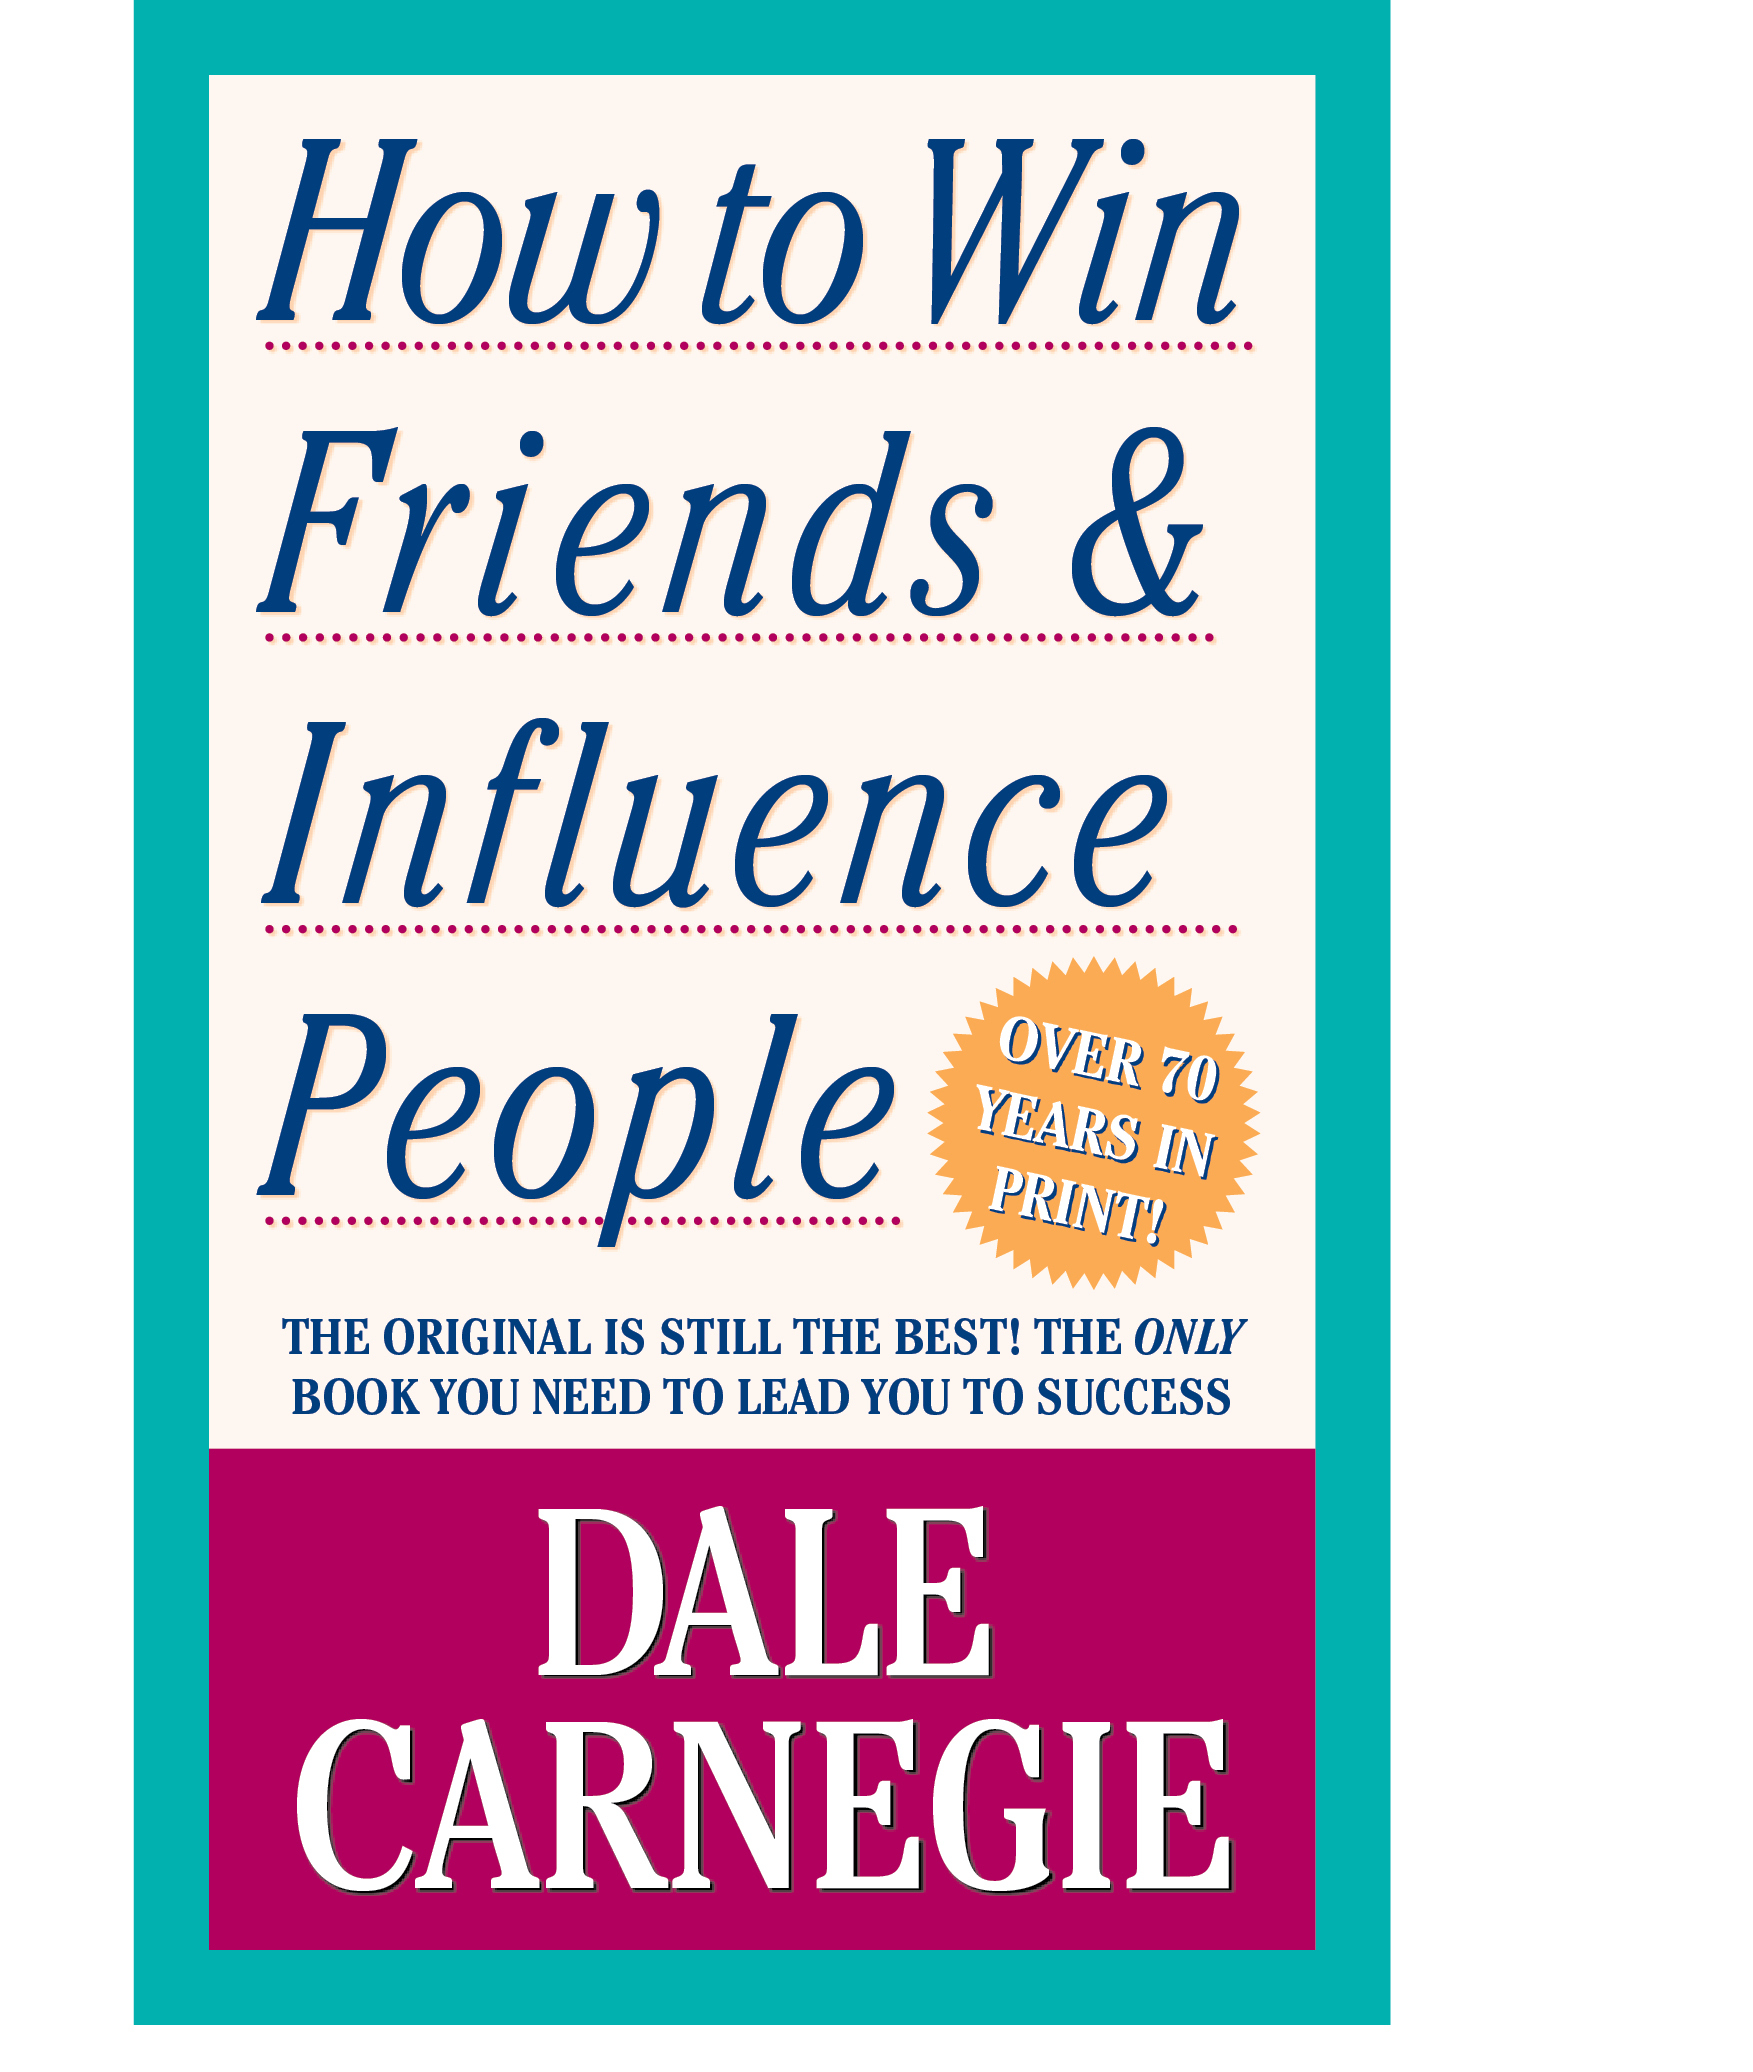 how to win friendsand influence people audiobook